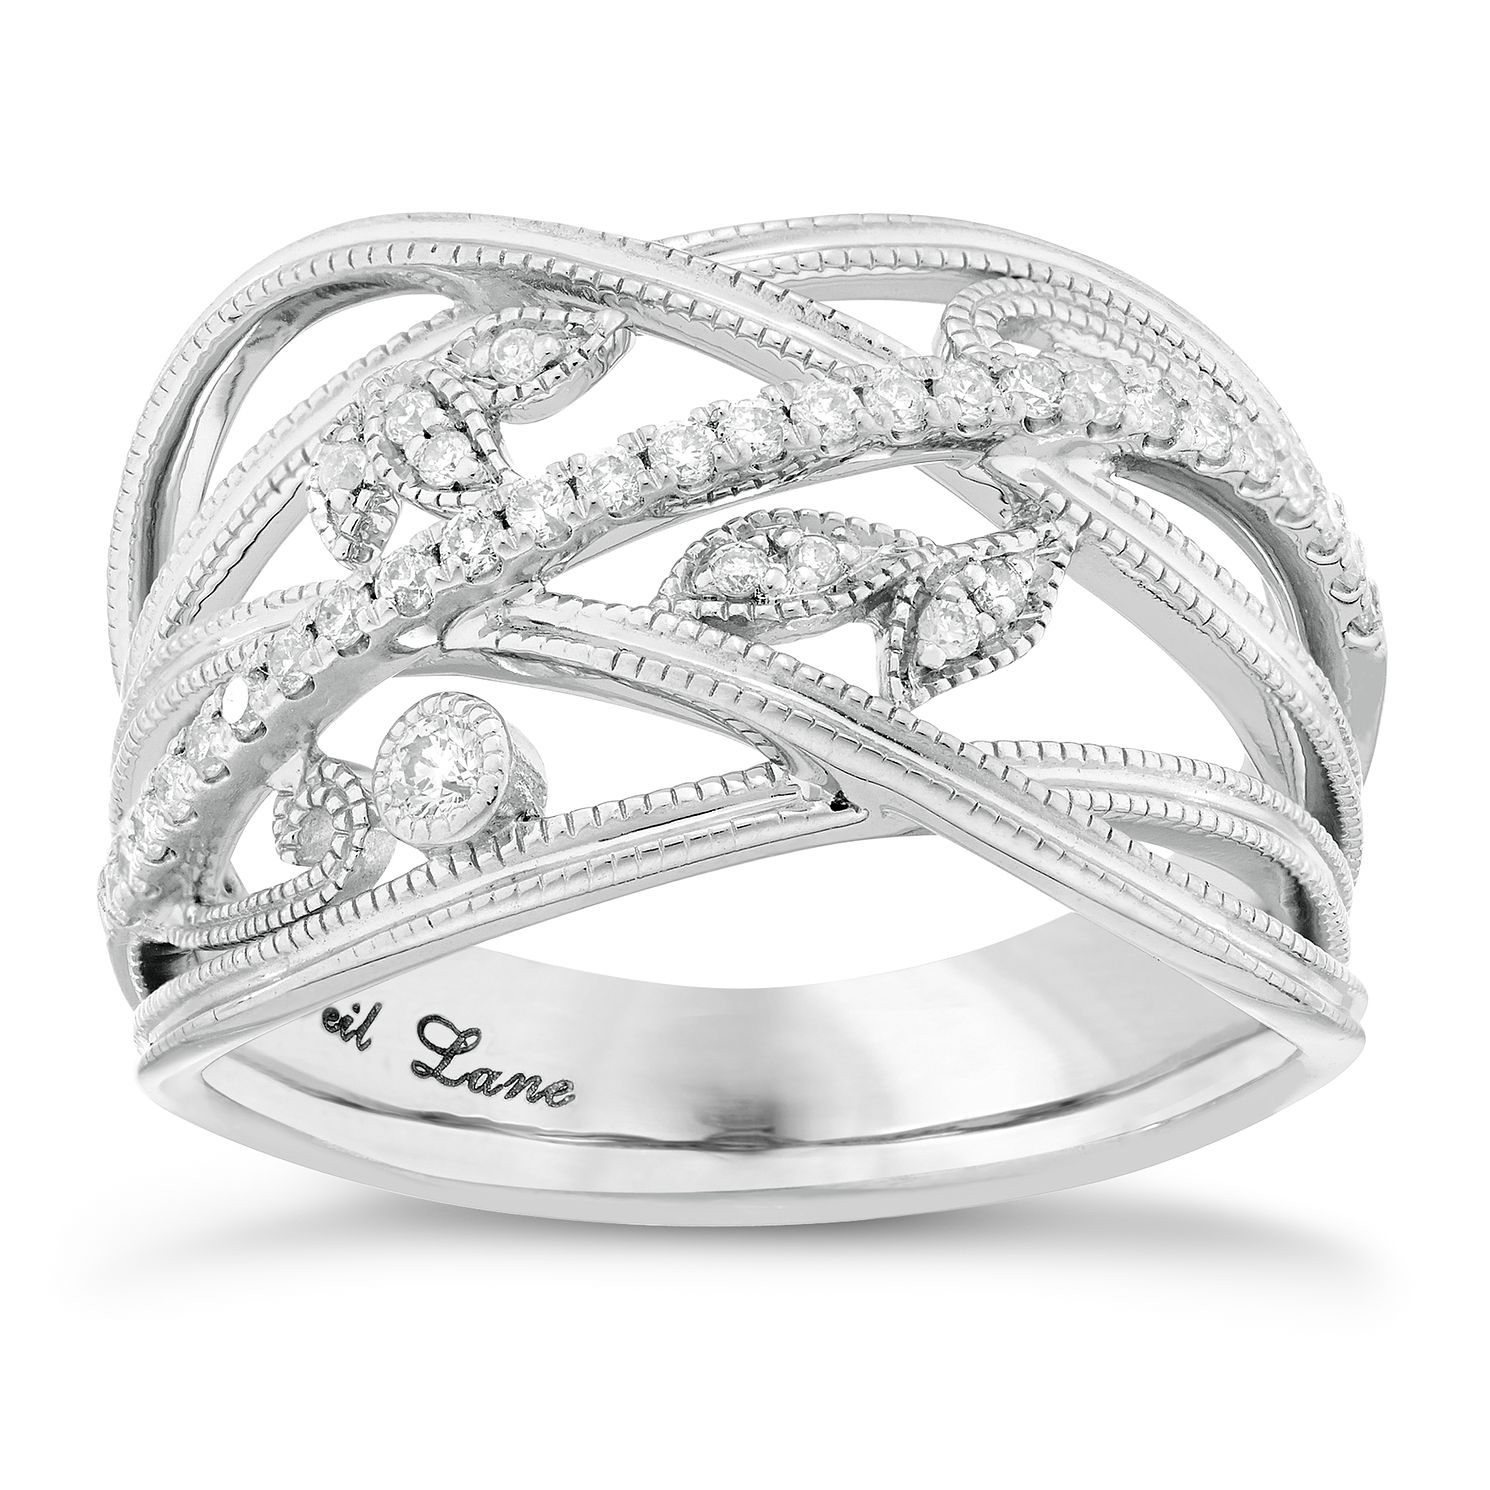 Neil Lane Designs 14ct White Gold 1/5ct Diamond Leaf Band - Product number 5857201